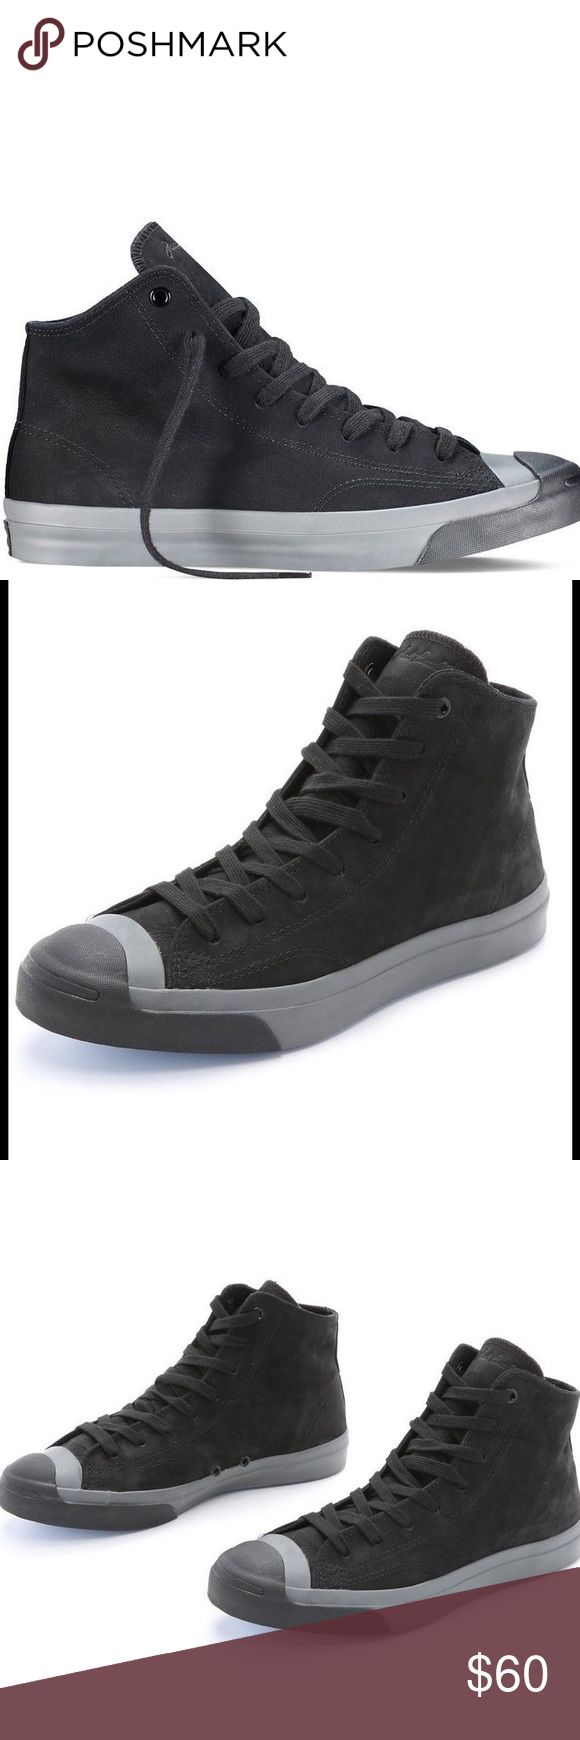 NWT🔶Converse Jack Purcell Jack Mid Top Nubuck Converse Jack Purcell Jack Mid Top Monochrome Nubuck RETAIL $90.                                              Please noted the box lid is removed. * Jack Purcell Jack Mid * Black/Black/Charcoal * Nubuck Uppers * Rubber Toecap * Vulcanised Sole * Defined Stitching Converse Shoes Athletic Shoes